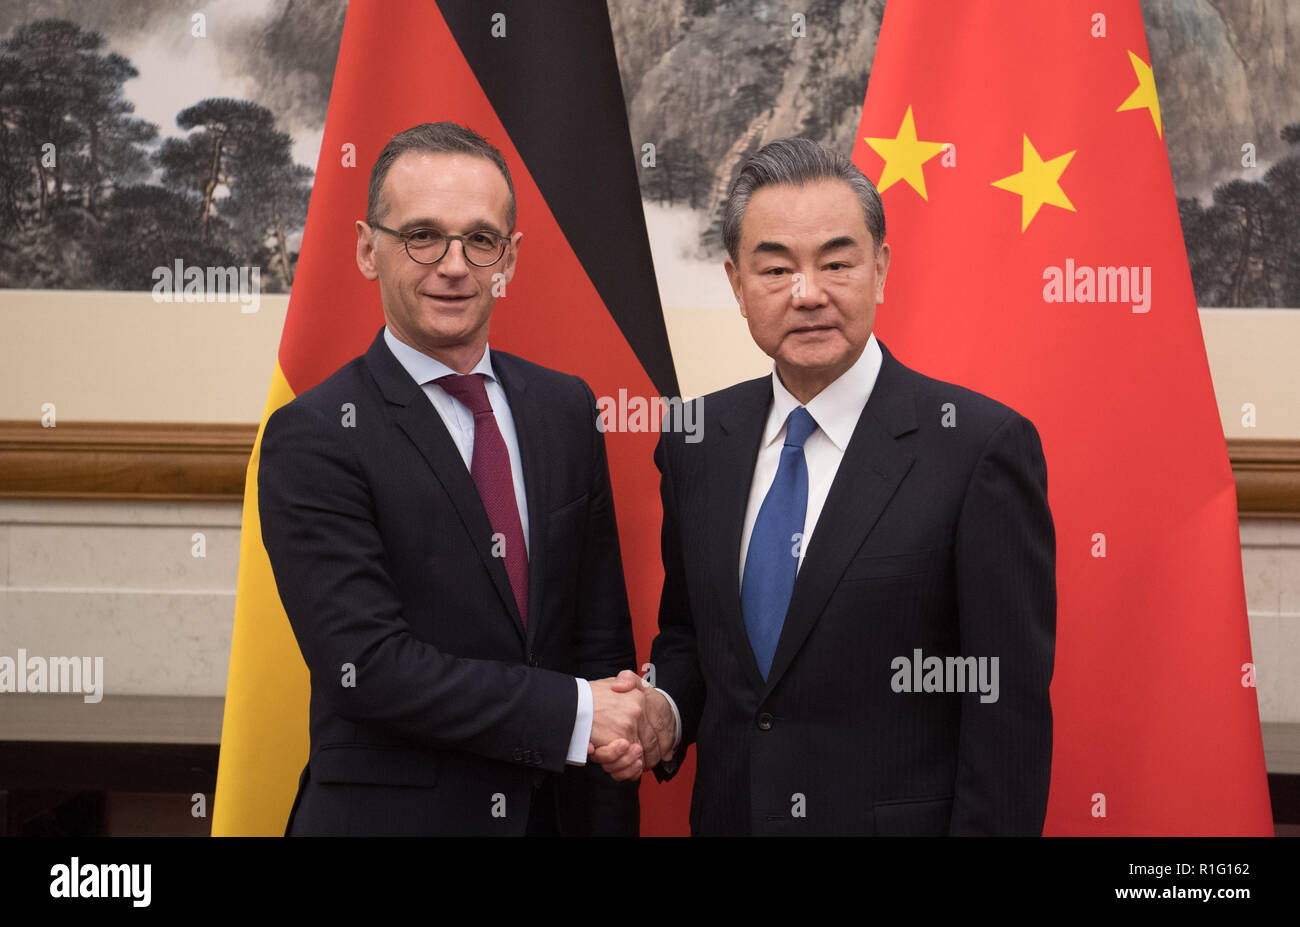 Peking, China. 13th Nov, 2018. Heiko Maas (SPD, l), Foreign Minister of Germany, is welcomed by Wang Yi, Foreign Minister of China, for a strategic dialogue in Beijing. Credit: Ralf Hirschberger/dpa/Alamy Live News - Stock Image